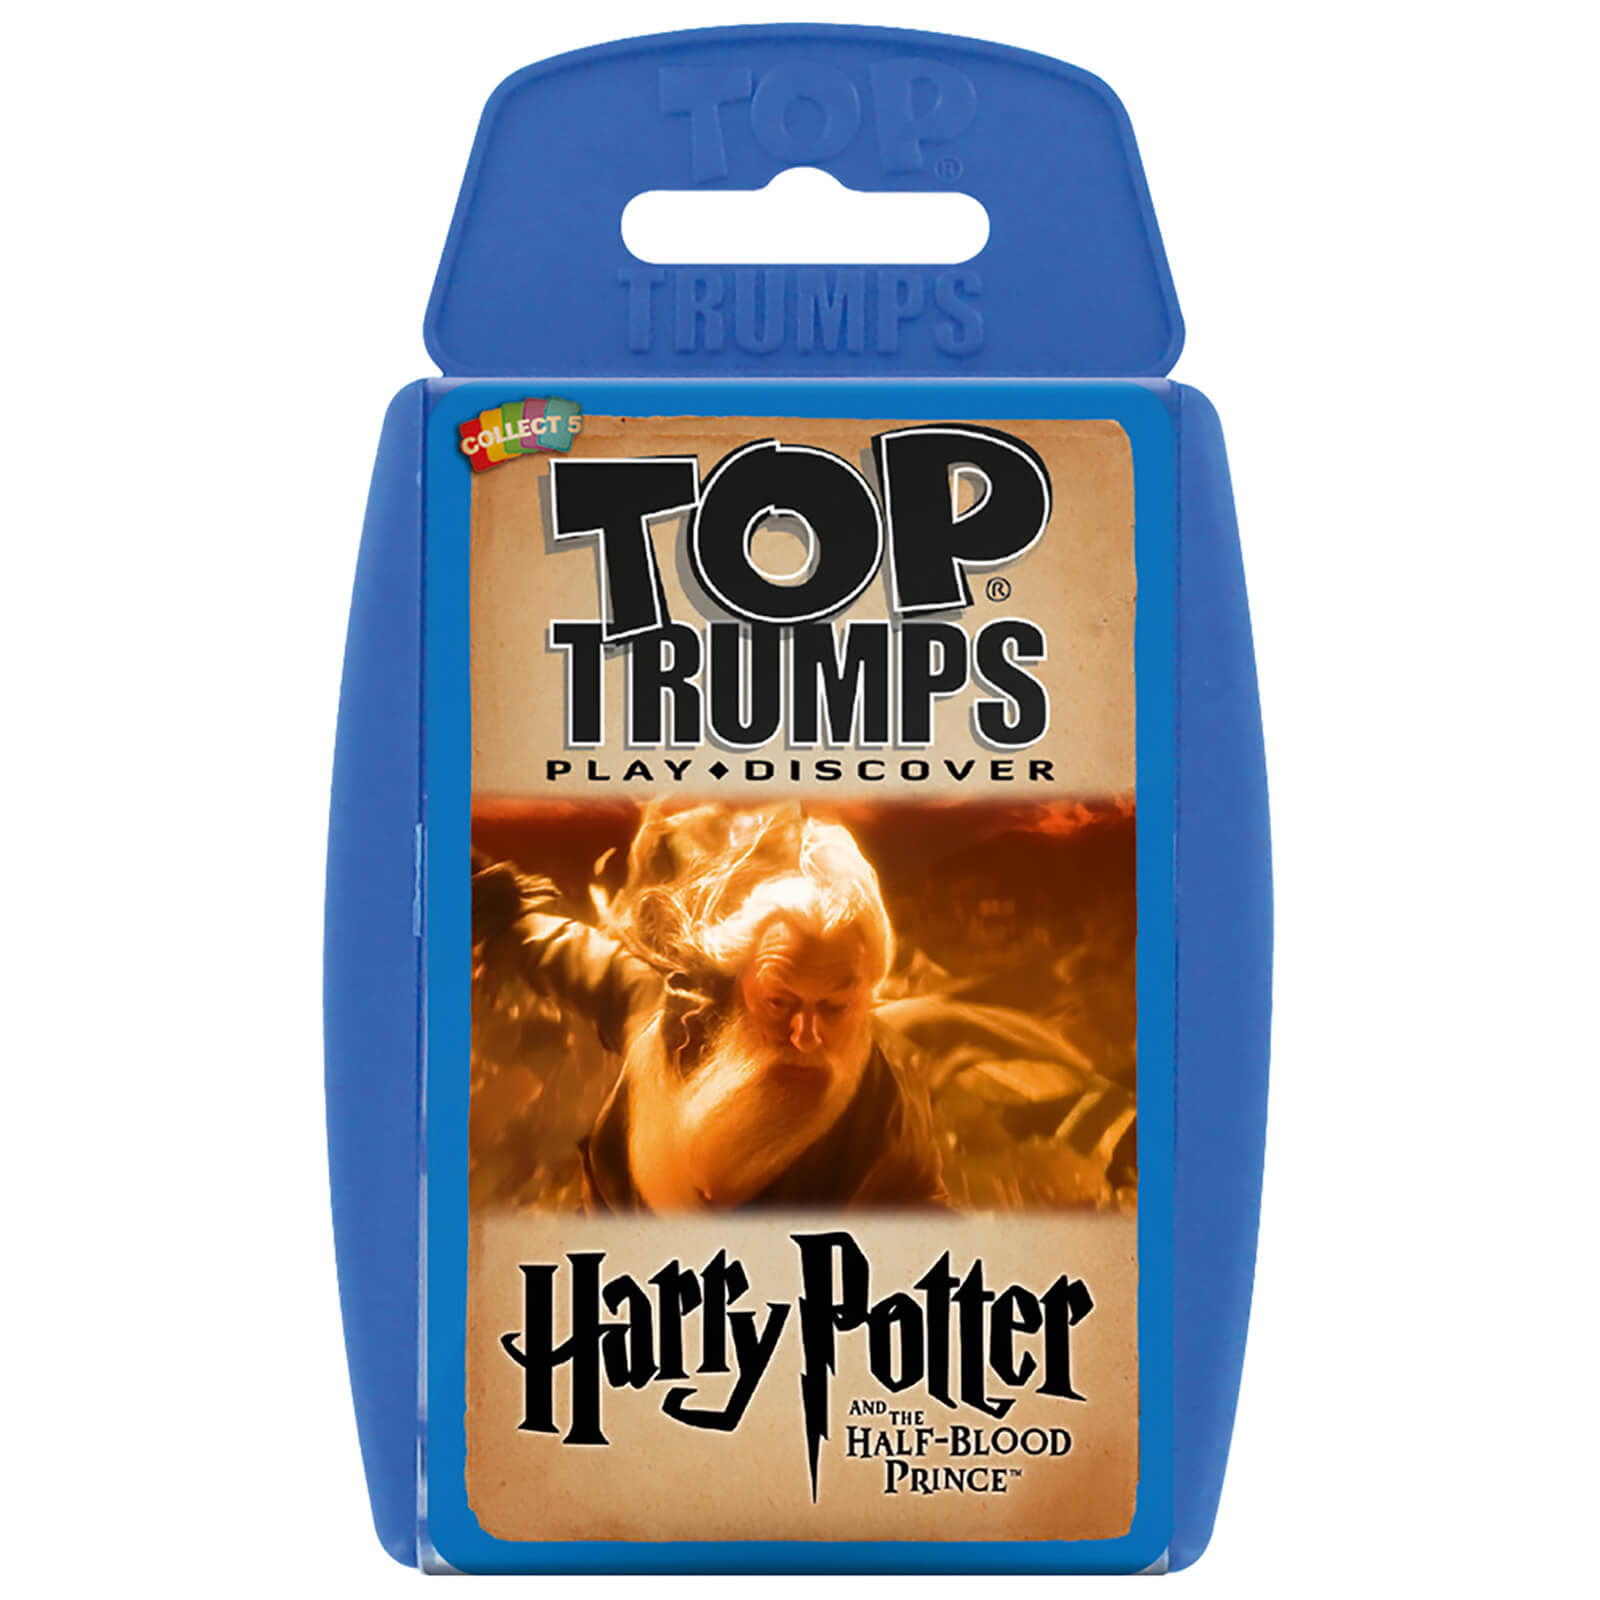 Image of Top Trumps Card Game - Harry Potter and the Half-Blood Prince Edition